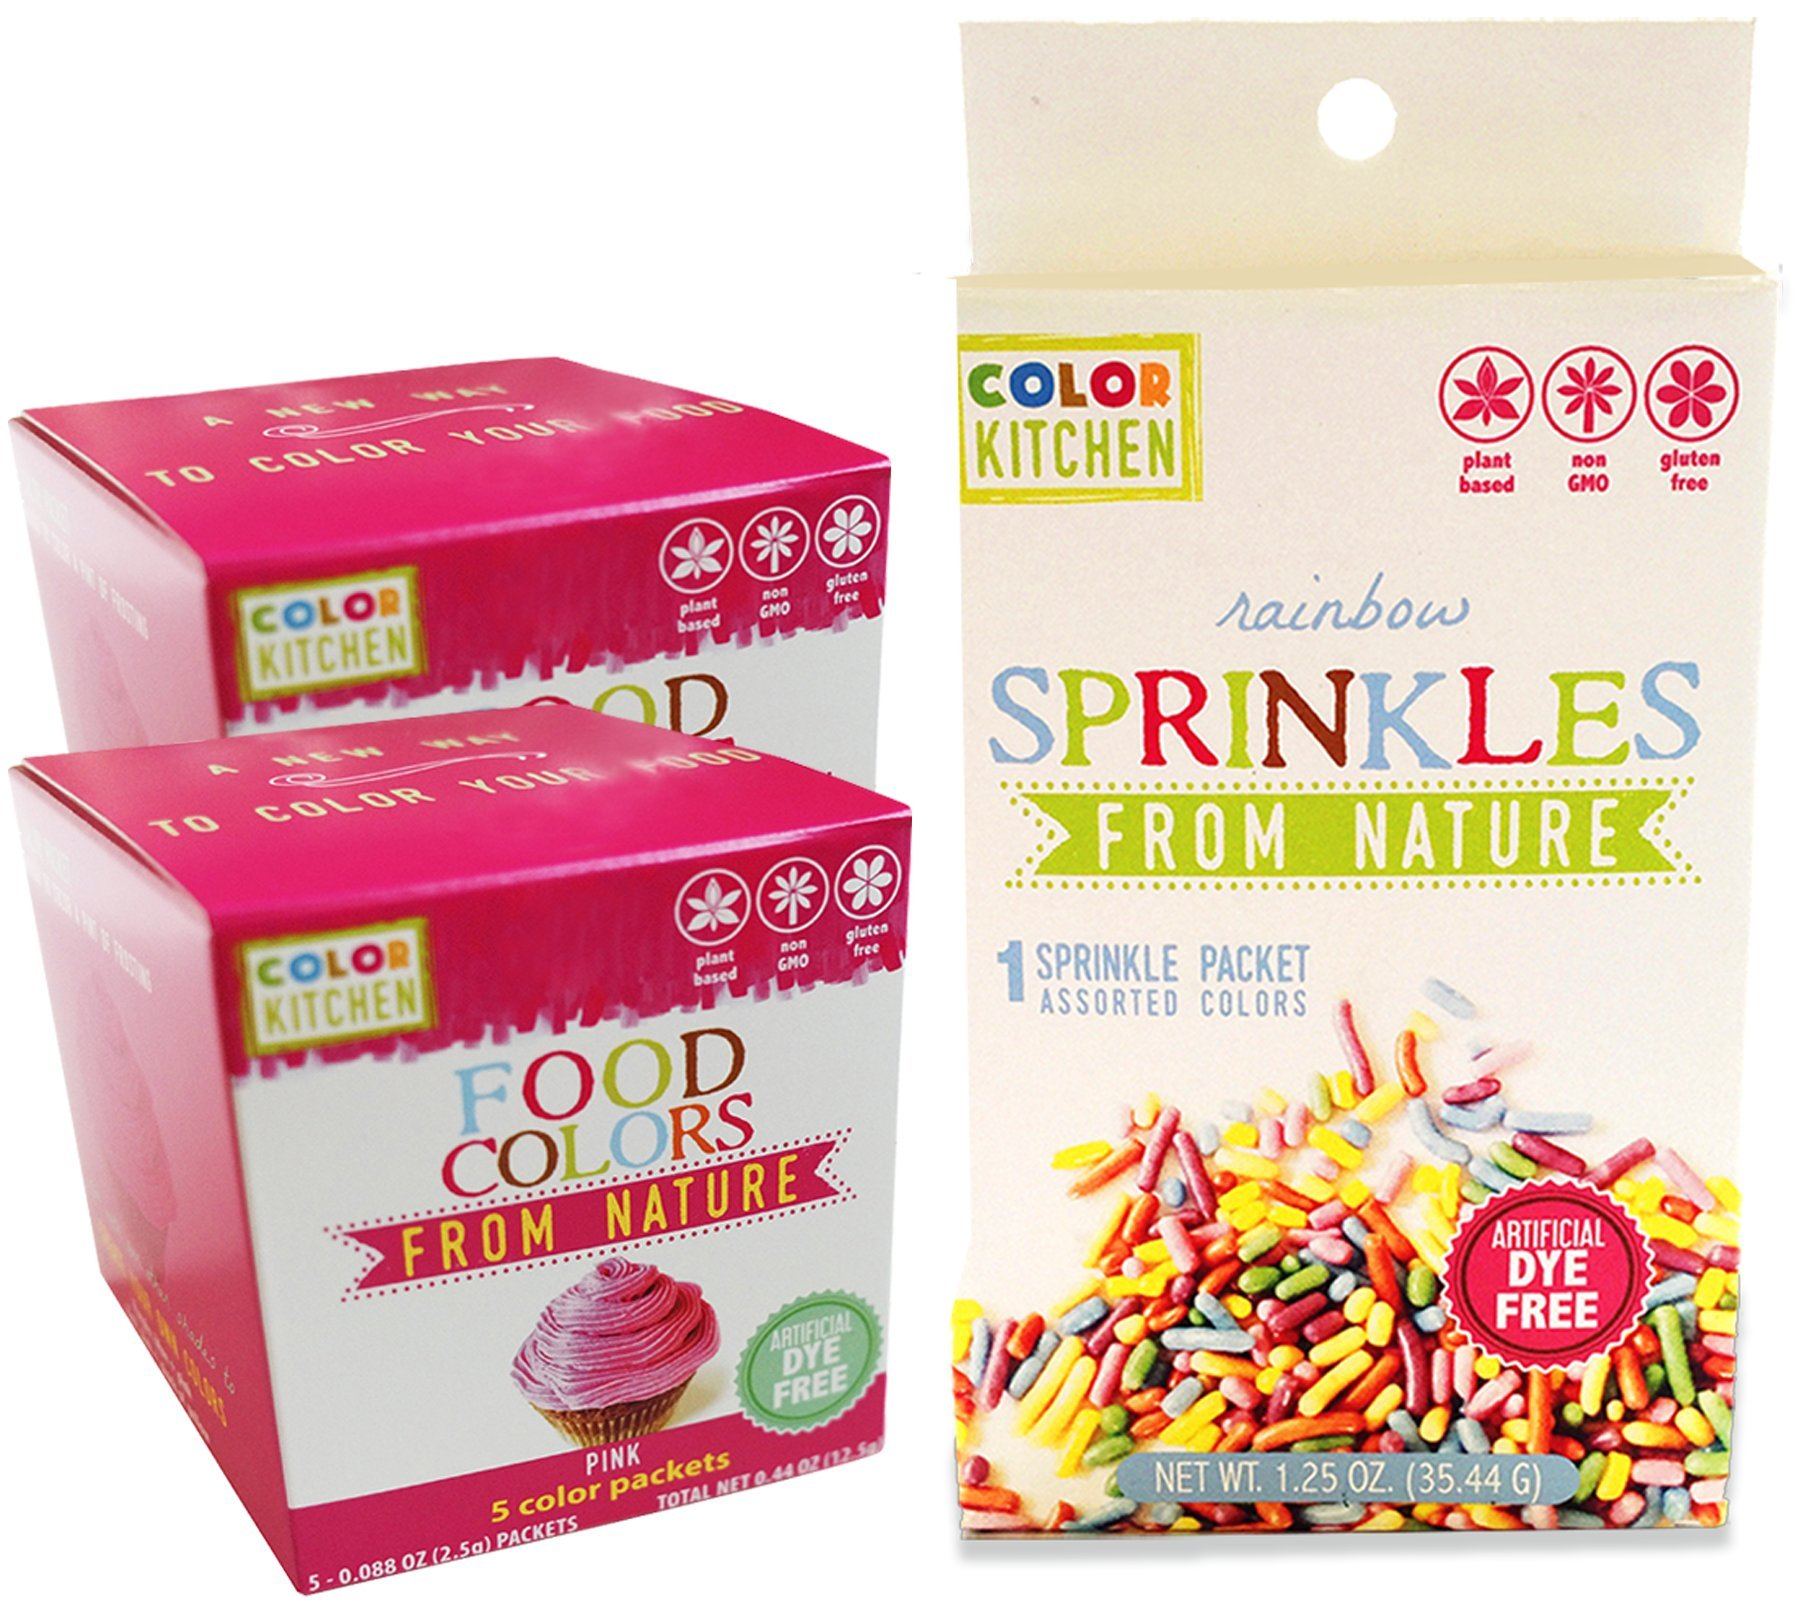 Food Coloring - ColorKitchen Two Pack Pink Bundle (5 Packs) - (2.5g Per Packet) - Natural - Vegan - Non-GMO - No Artificial Food Dyes - Highly Concentrated Powder Pigment - Includes Rainbow Sprinkles